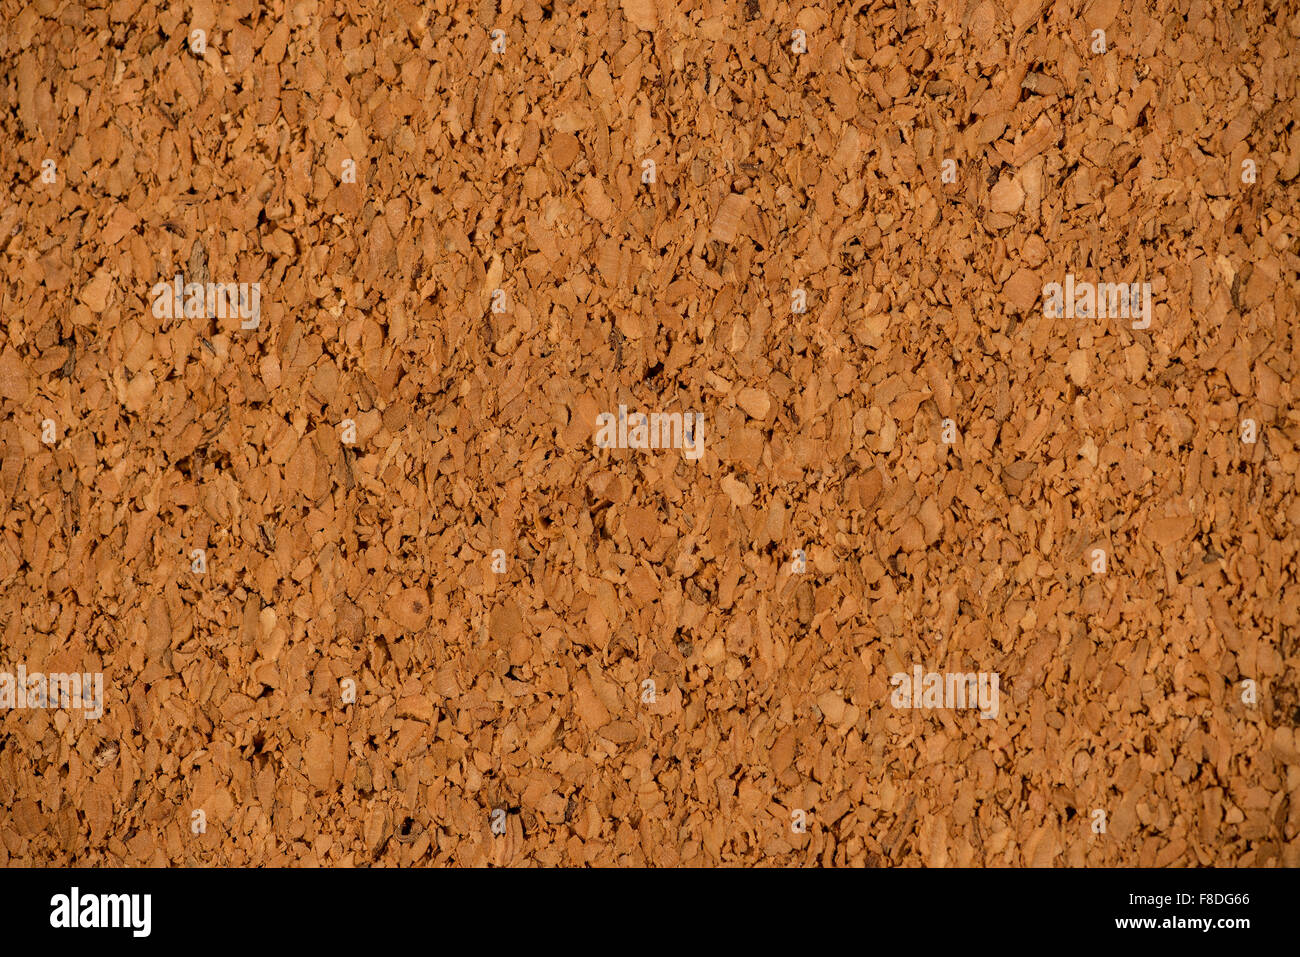 Extreme Close-up of Corkboard Background - Stock Image